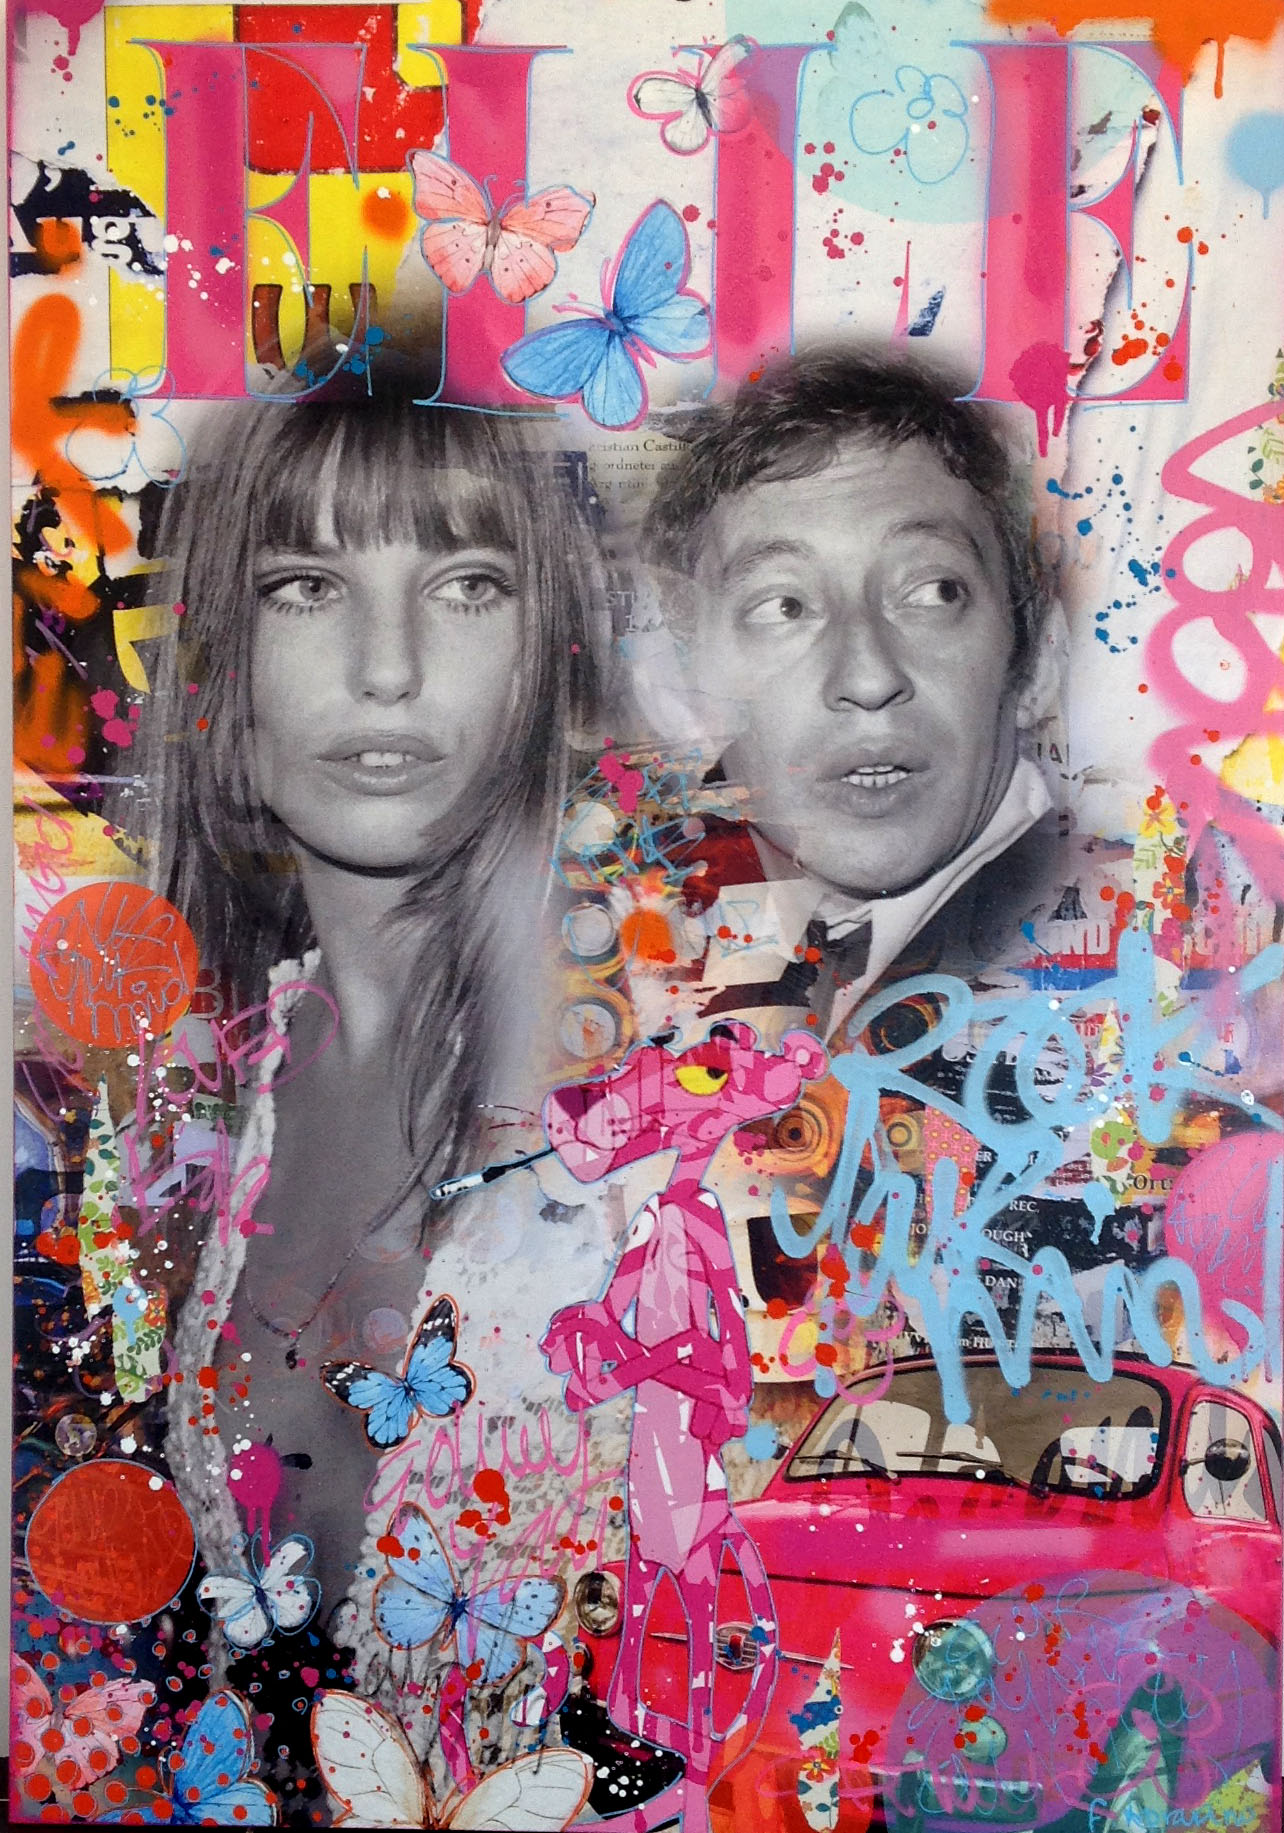 Serge-gainsbourg-Fabien-Novarino-tableau-pop-art